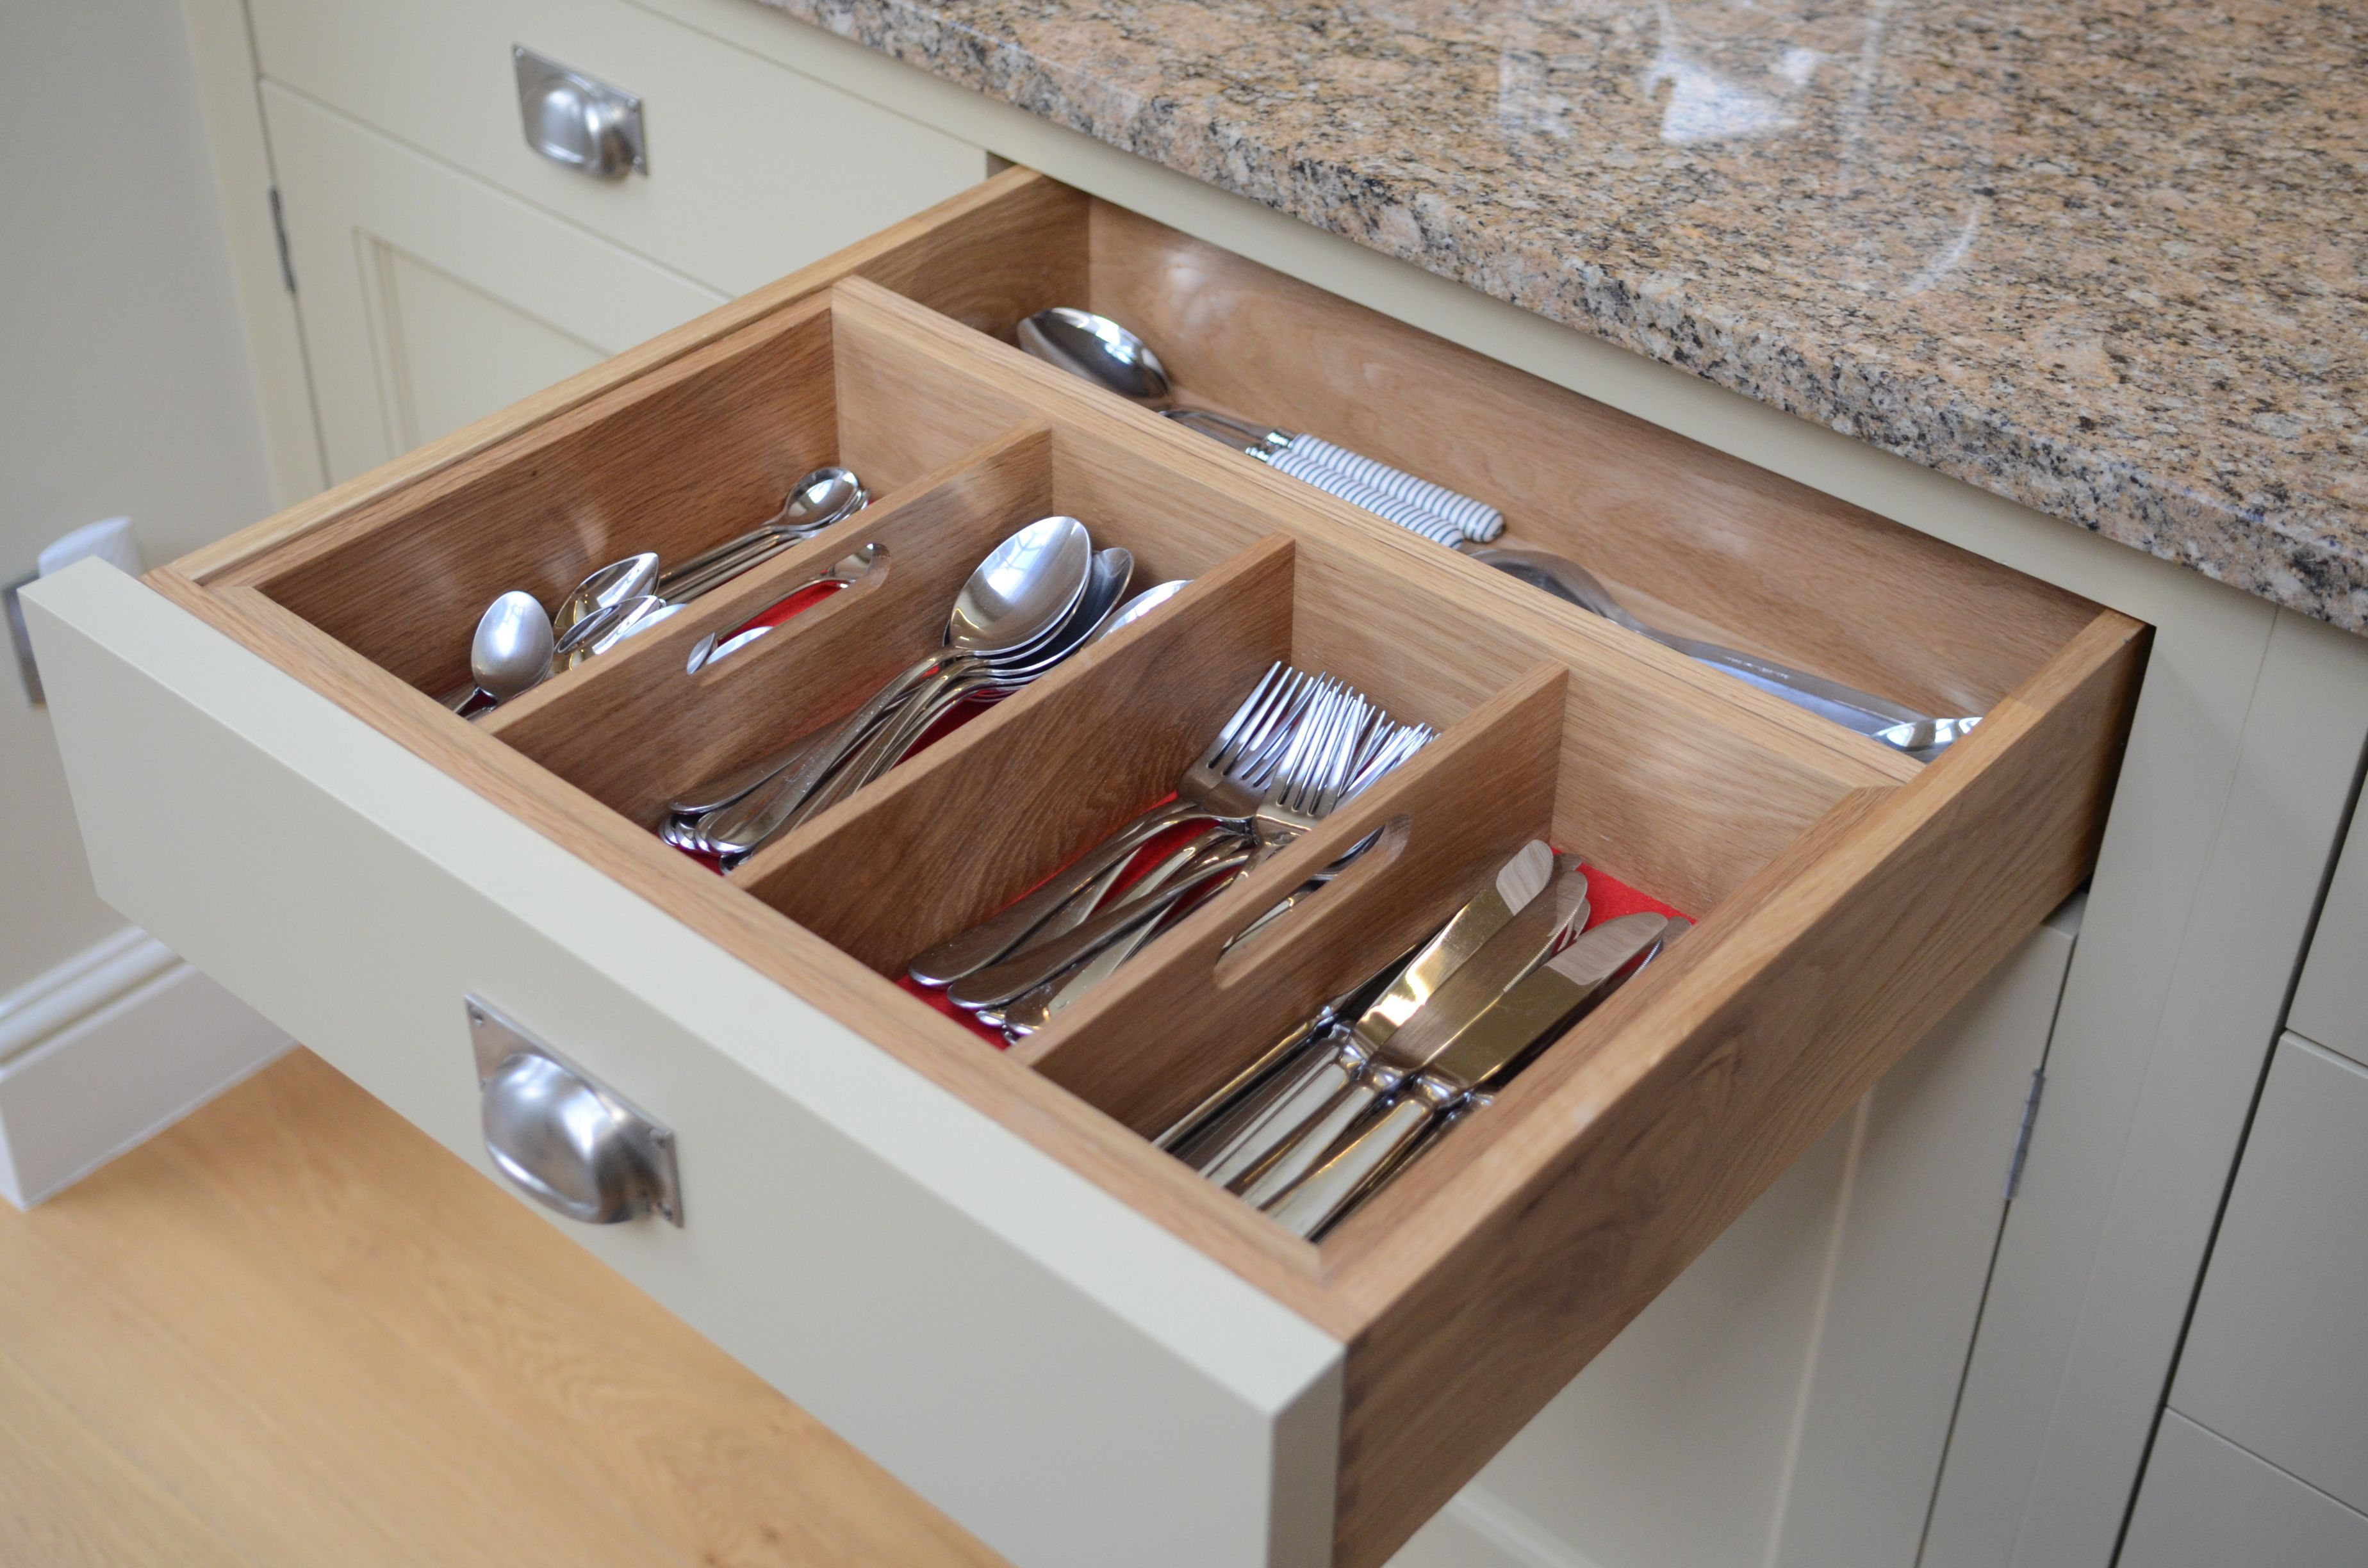 Oak cutlery drawer inserts with red felt bottom.  Cup handle on drawer.